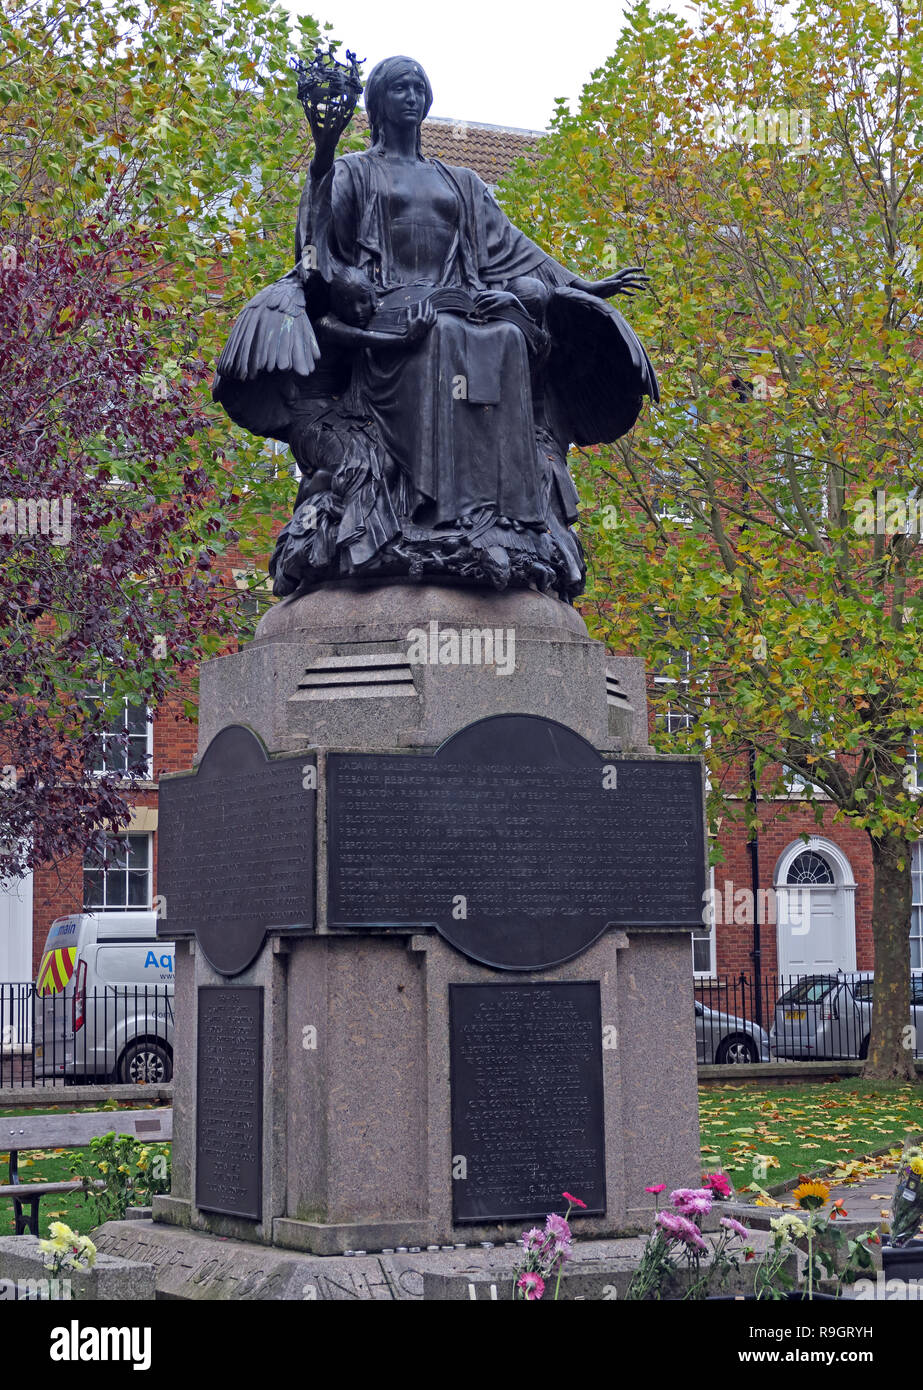 GoTonySmith,@HotpixUK,HotpixUK,Souh West England,UK,listed grade2,memorial,bronze,statue,King Square Bridgwater,TA6,plinth,civilisation,IN HONOUR OF THE MEN OF BRIDGWATER WHO GAVE THEIR,IN THE GREAT WAR 1914-1918,1914-1918,1914,1918,sunday,remembrance sunday,Korean War,Falklands Conflict,Afghan conflict,soldiers,conscripts,imperial wars,Georgian square,Georgian,square,War Memorials Trust,War Memorial Trust,plaques,town,town centre,Sergeant Benjamin James Knight,British Forces,casualties,casualty,war dead